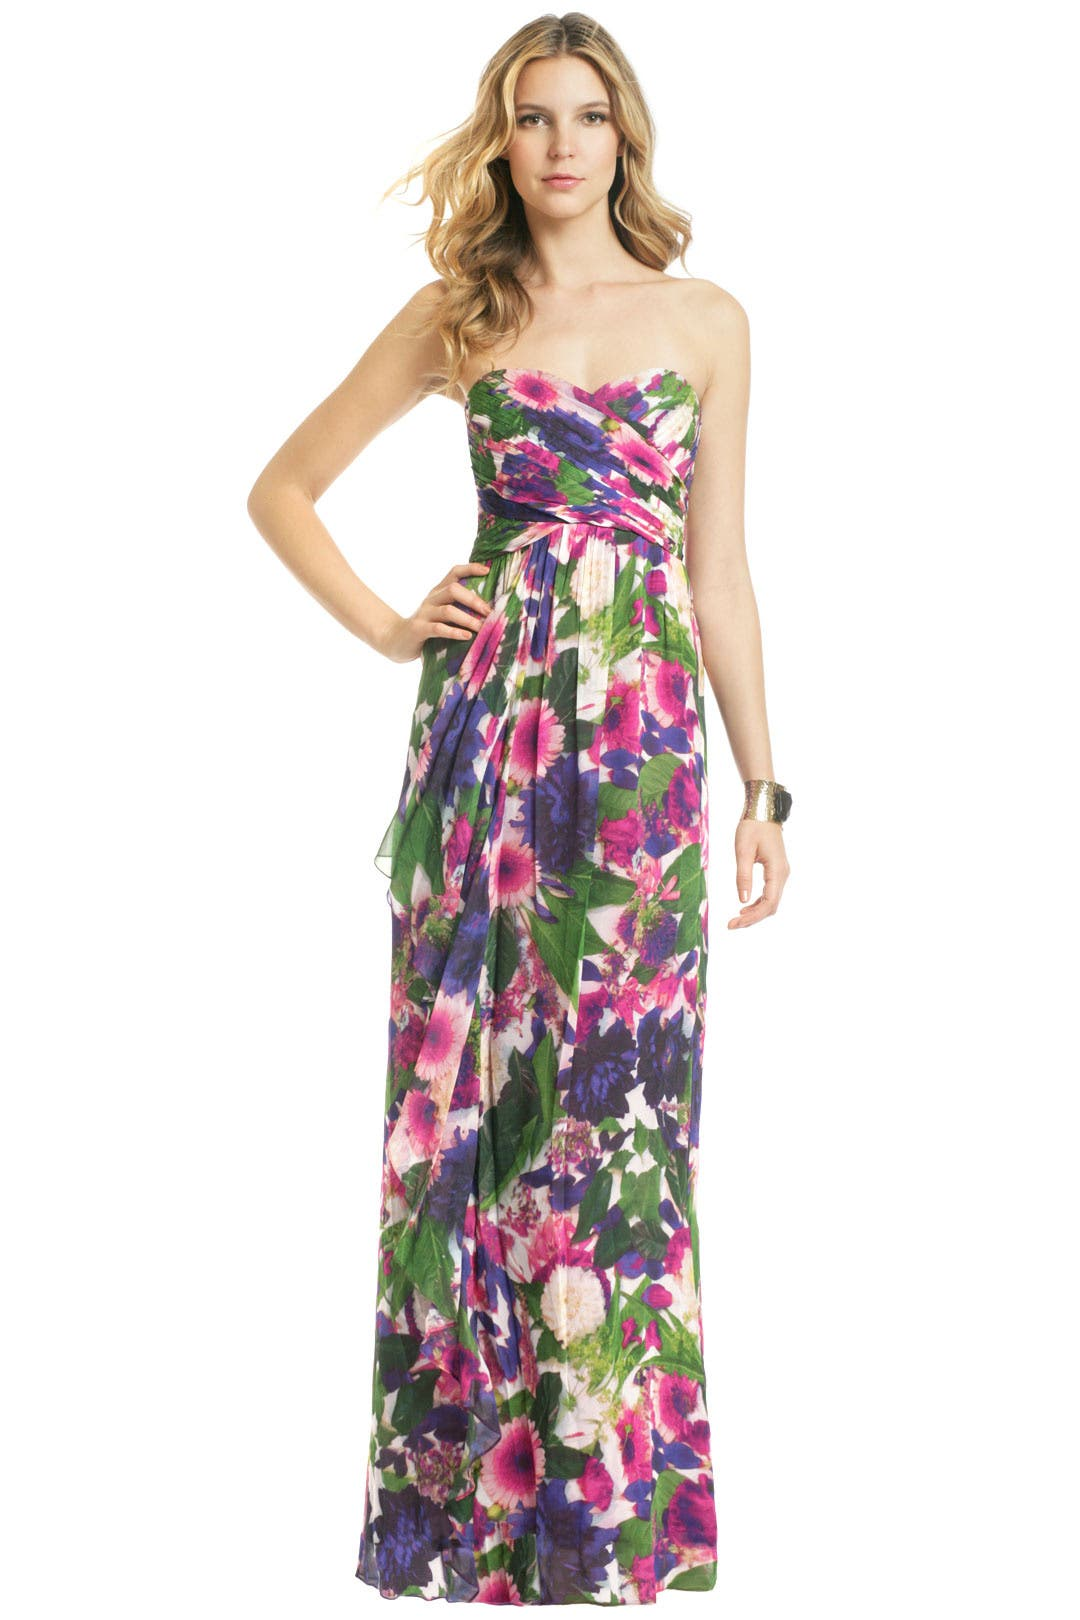 Yuyuan Garden Maxi by Nicole Miller for 120 Rent the Runway